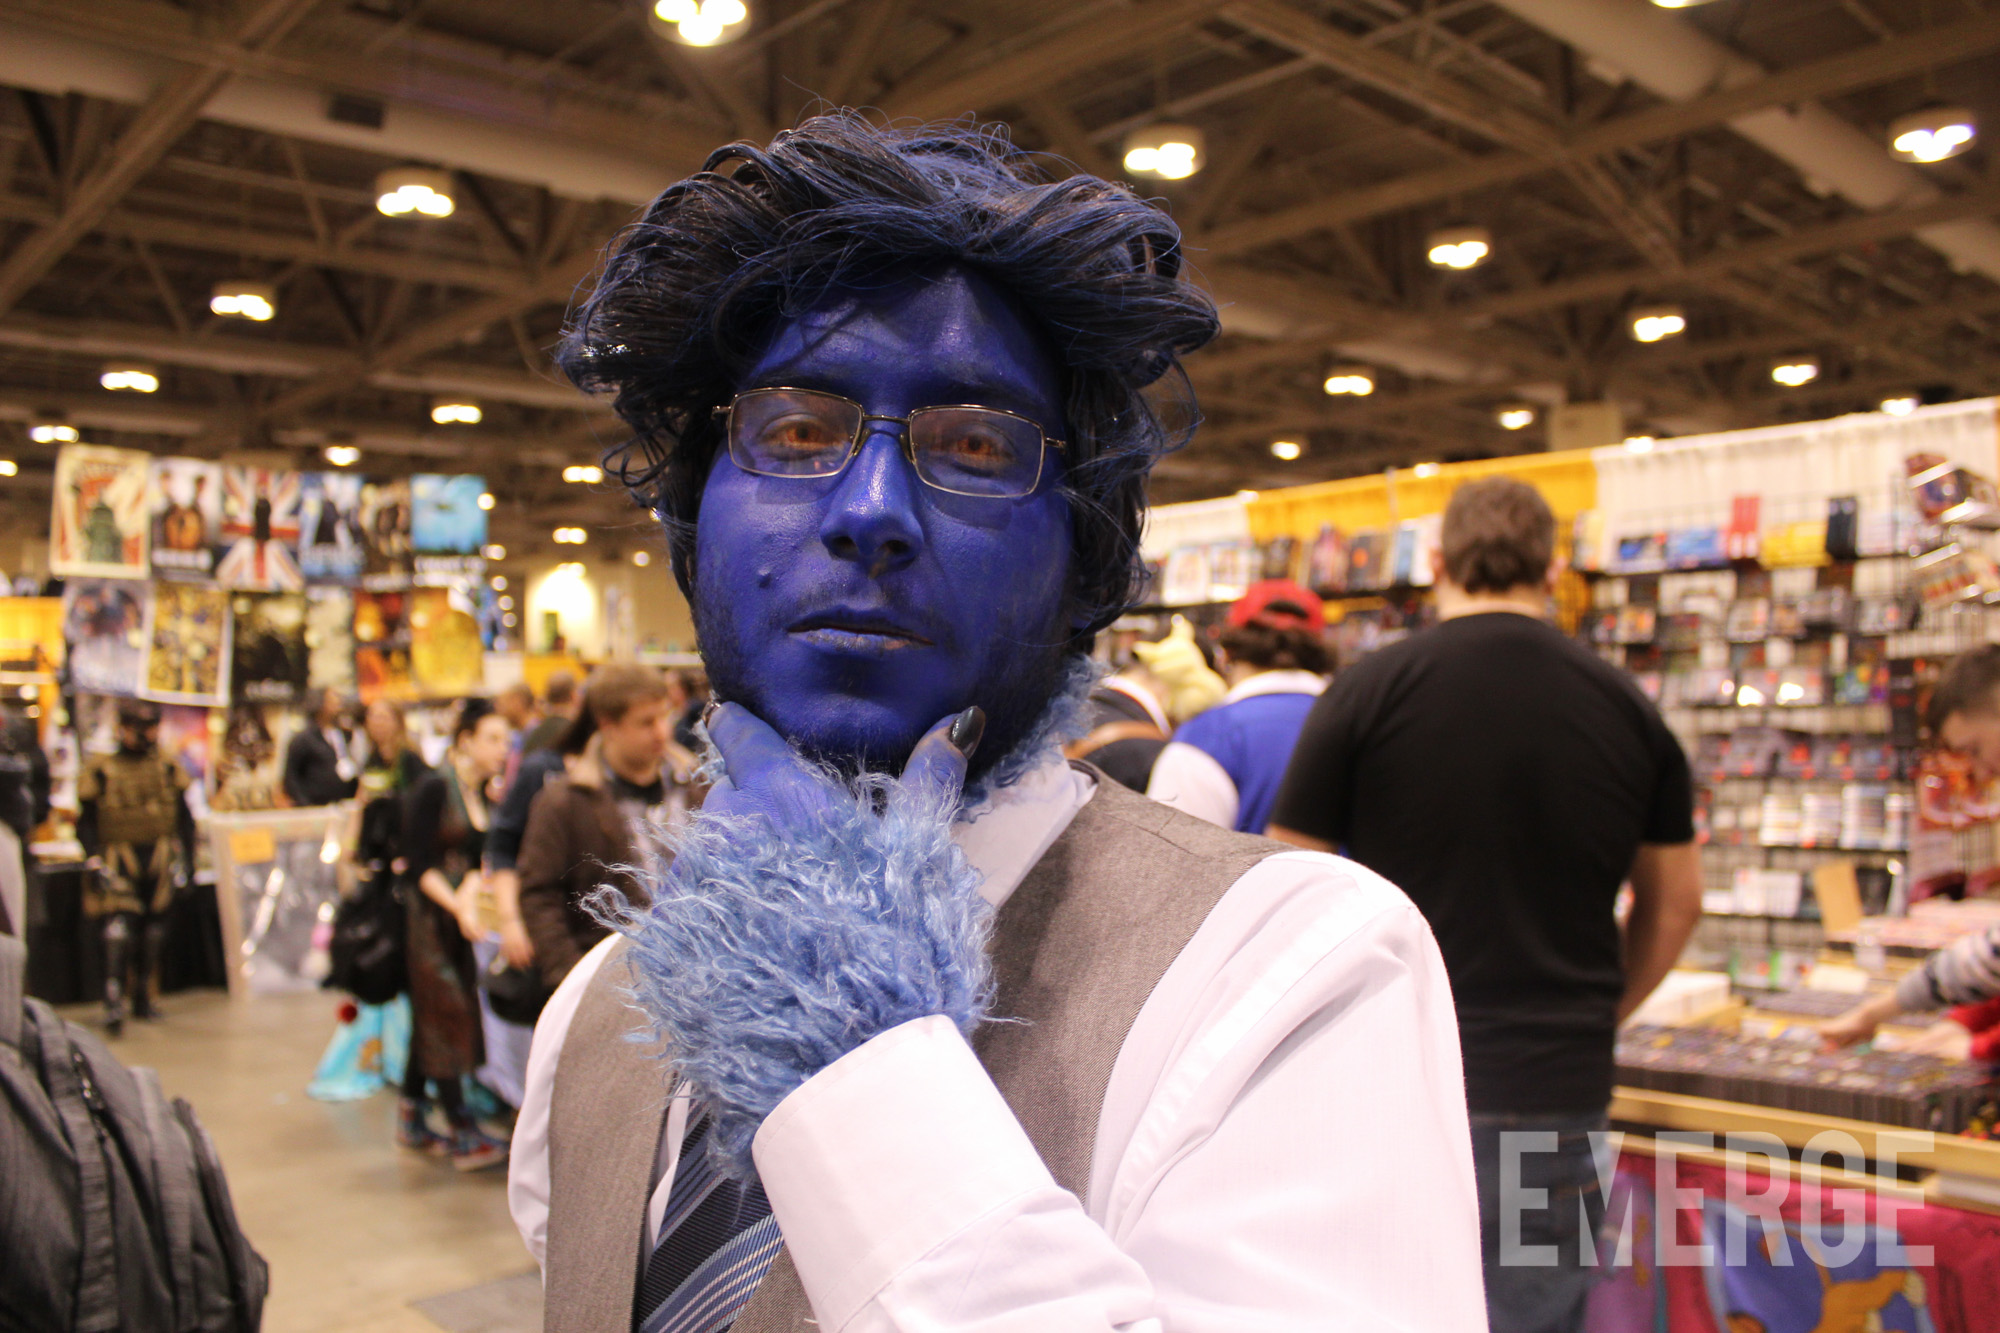 Kelsey Grammar or not, this Beast cosplay from X-men was authentic